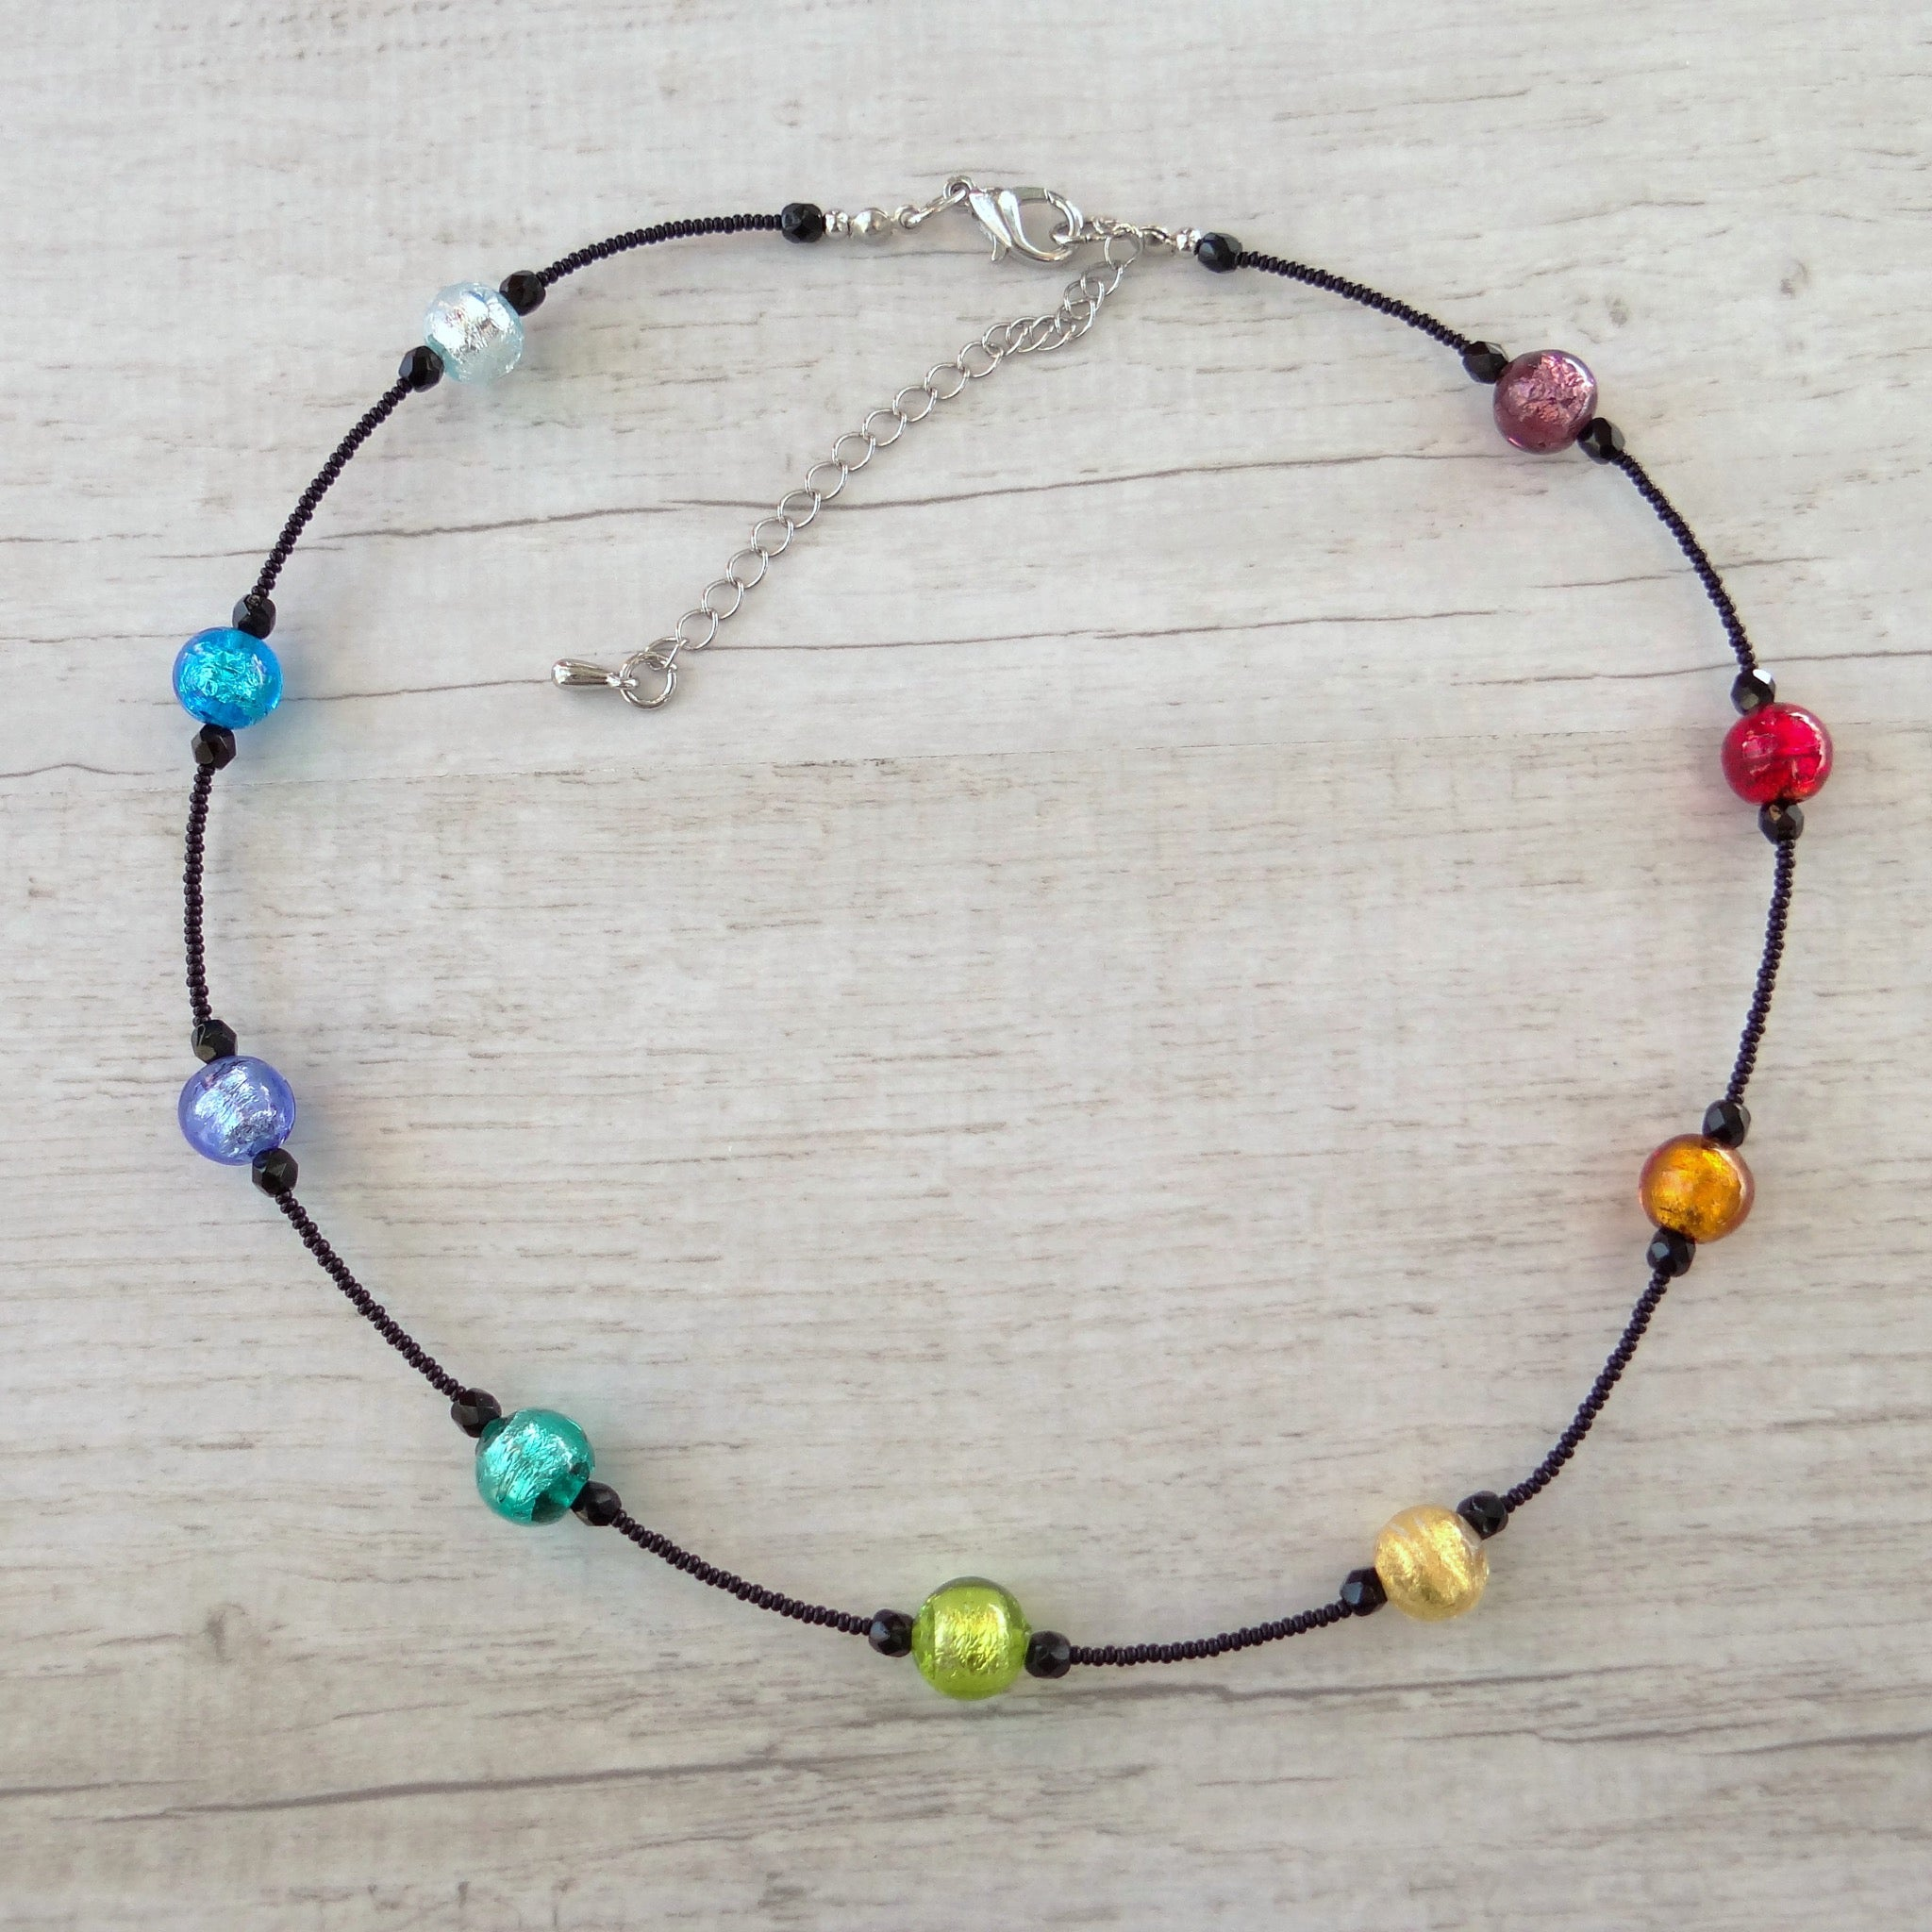 Coriandoi - Murano Glass Short Necklace